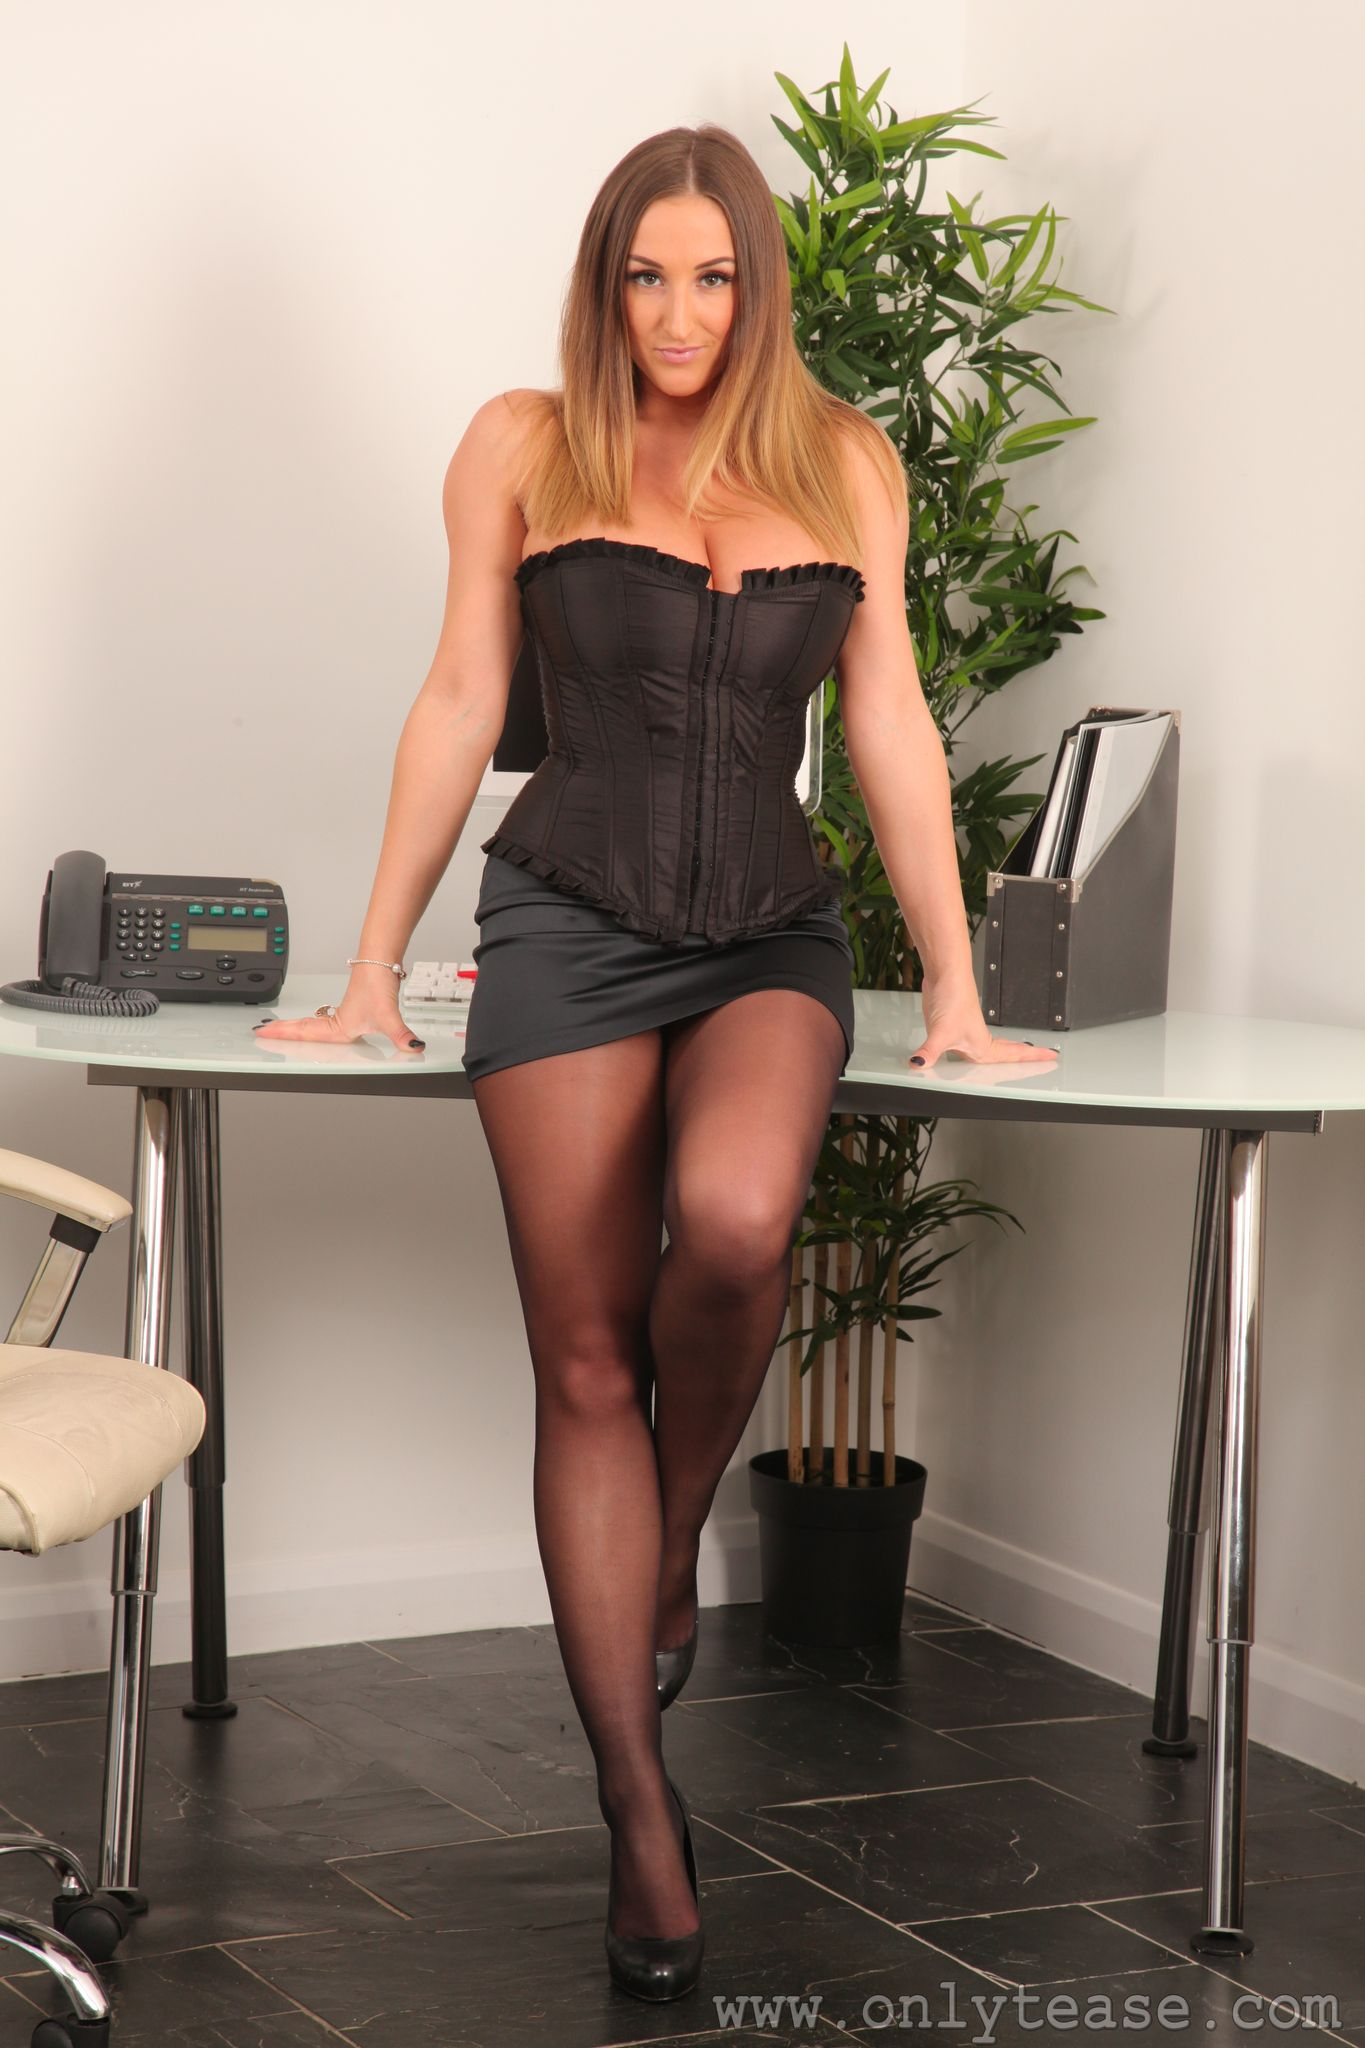 Stacey Poole Office Corset Only Tease - Only Tease - FoxHQ